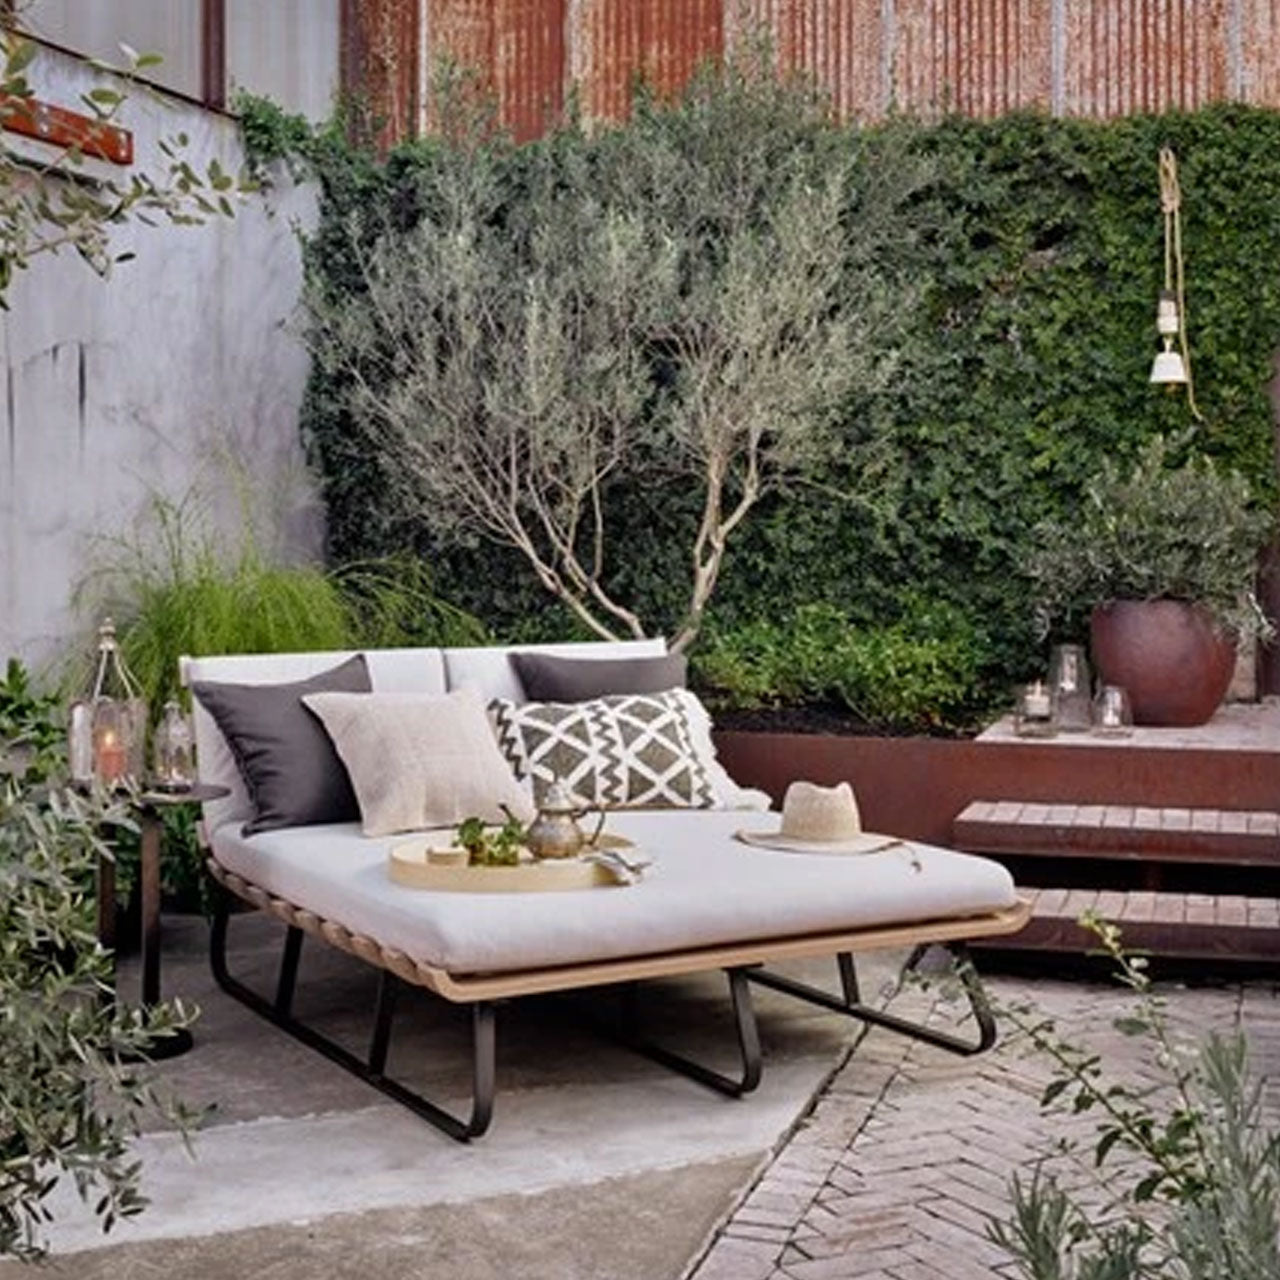 Tiffany Hunter Home & Design Center Outdoor Seating for Sale